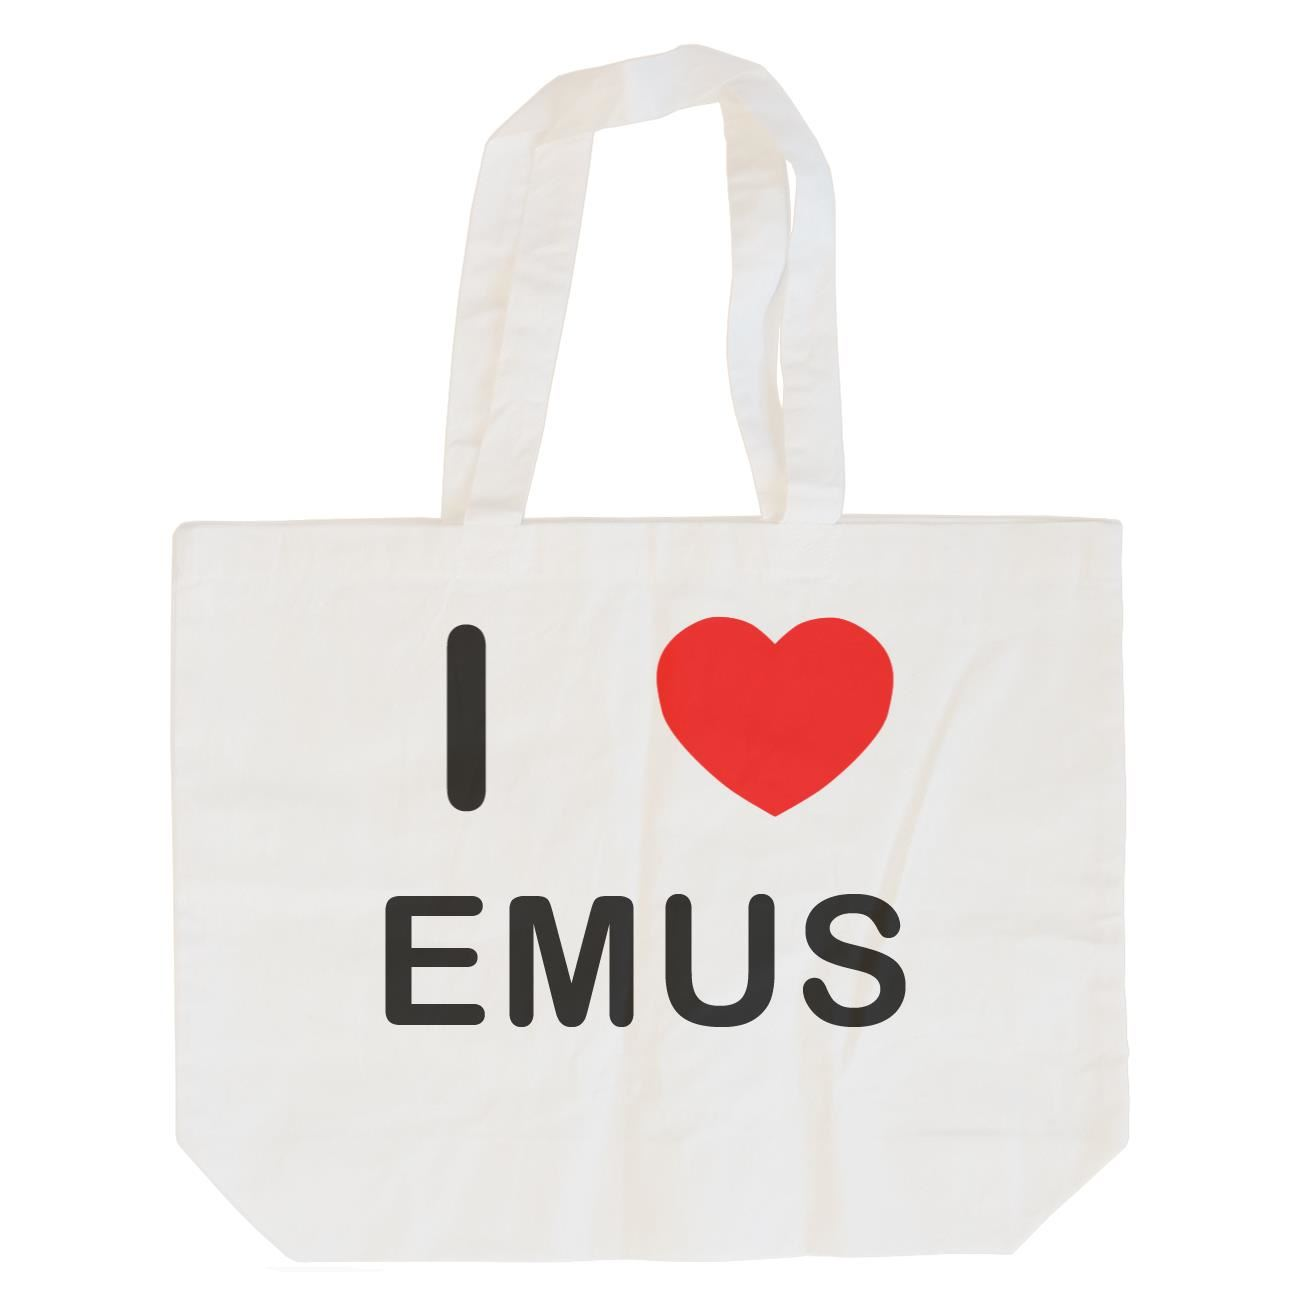 I Love Emus - Cotton Bag | Size choice Tote, Shopper or Sling